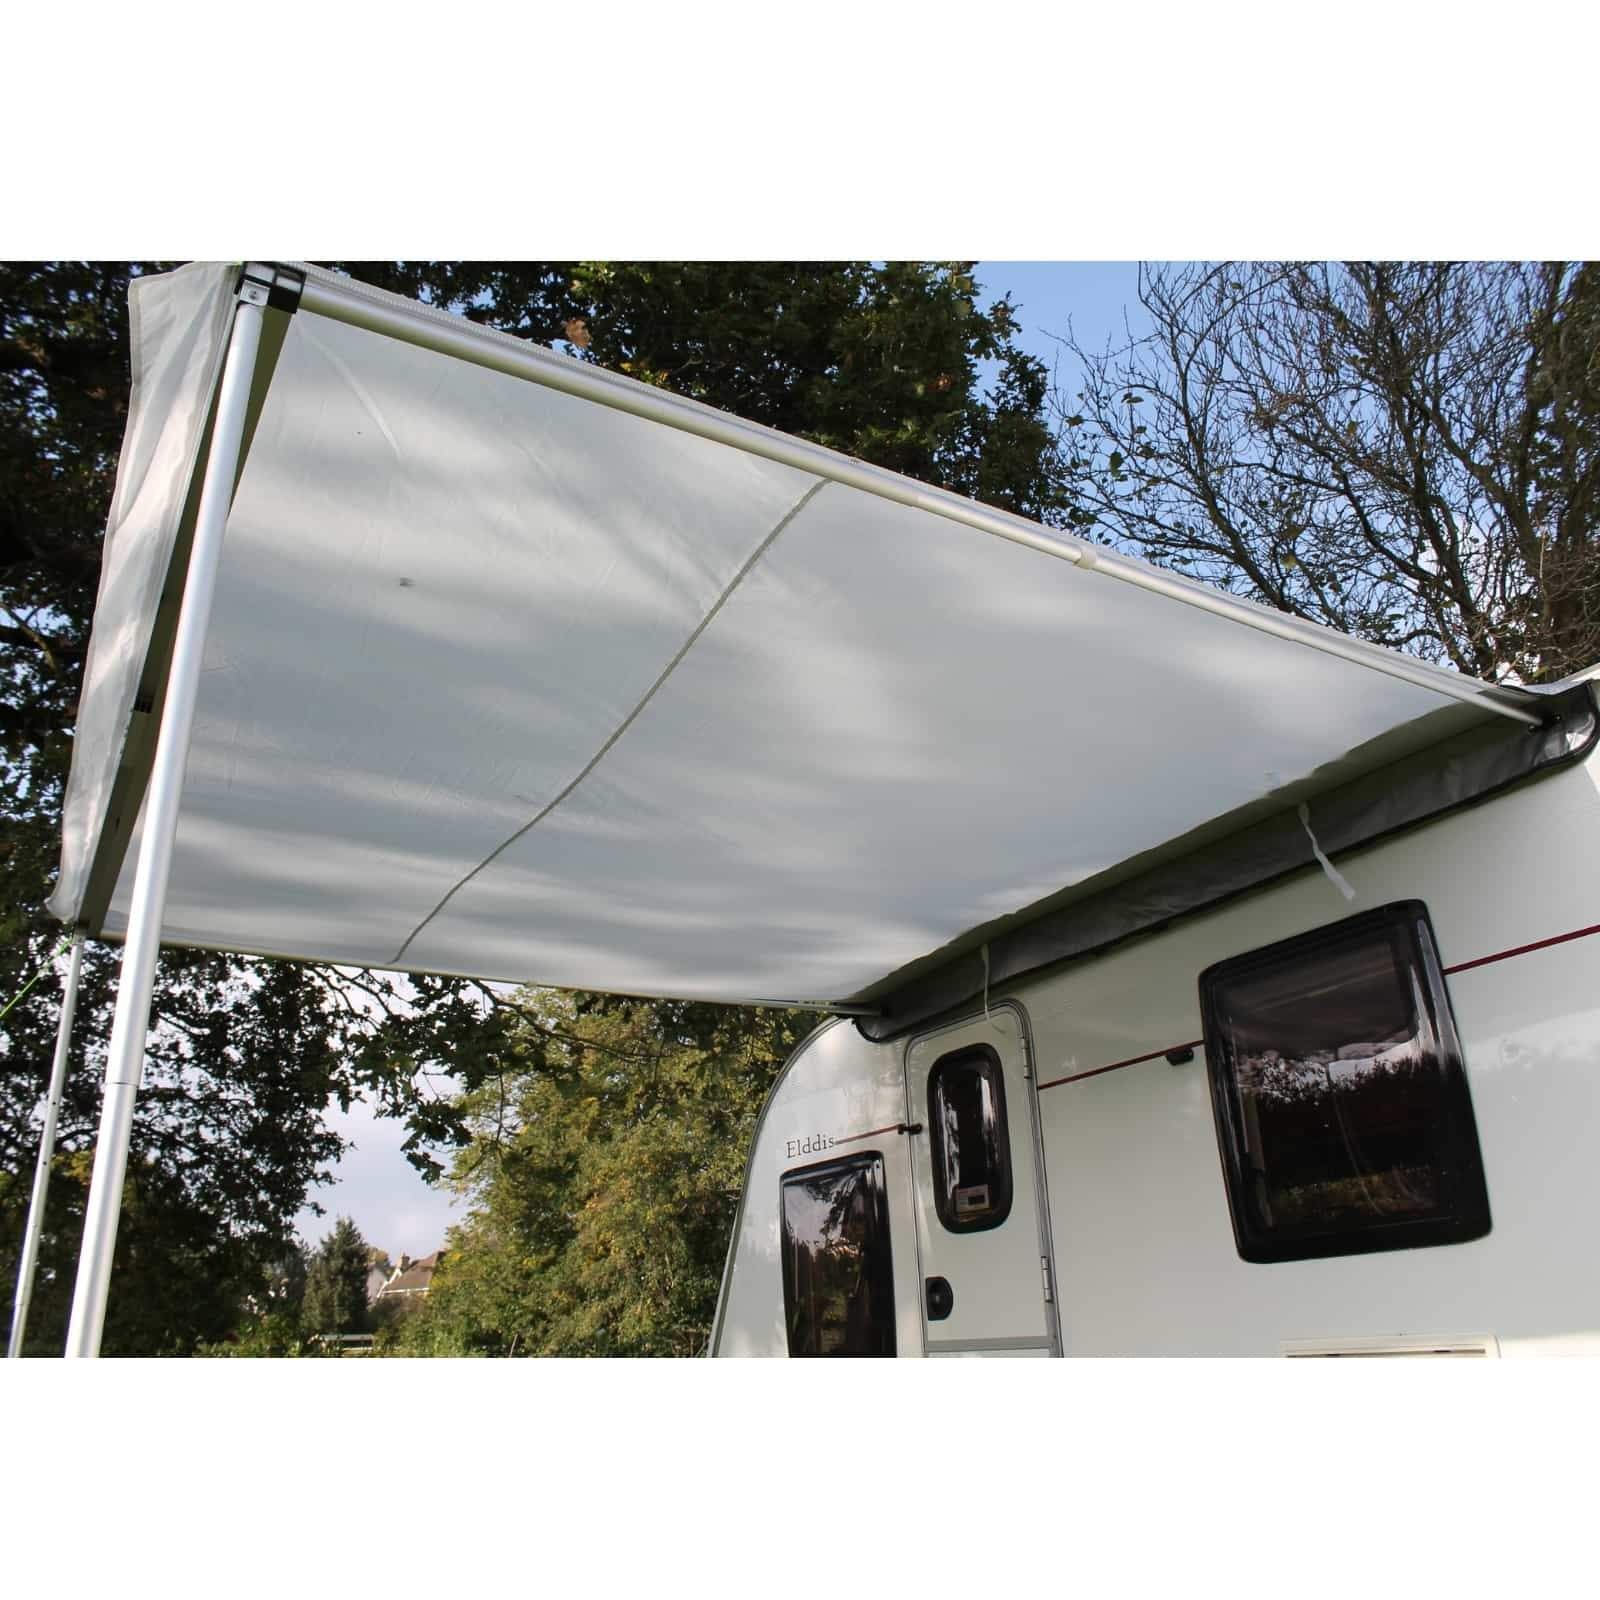 Sunncamp Protekta Roll Out Sun Awning Canopy (2019)